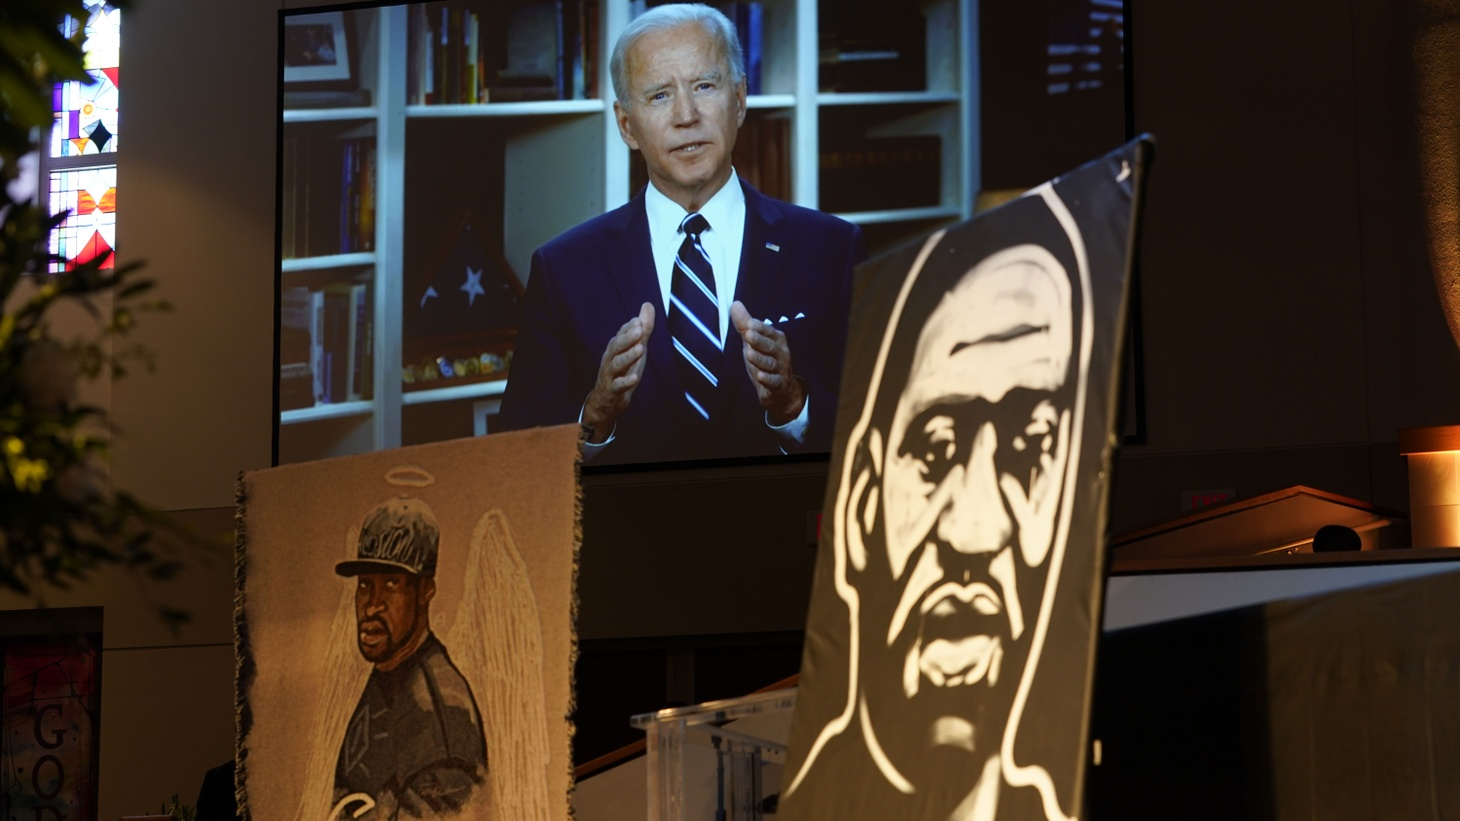 June 9, 2020, Houston, TX, USA; Democratic presidential candidate, former Vice President Joe Biden speaks via video link as family and guests attend the funeral service for George Floyd at The Fountain of Praise church Tuesday, June 9, 2020, in Houston.